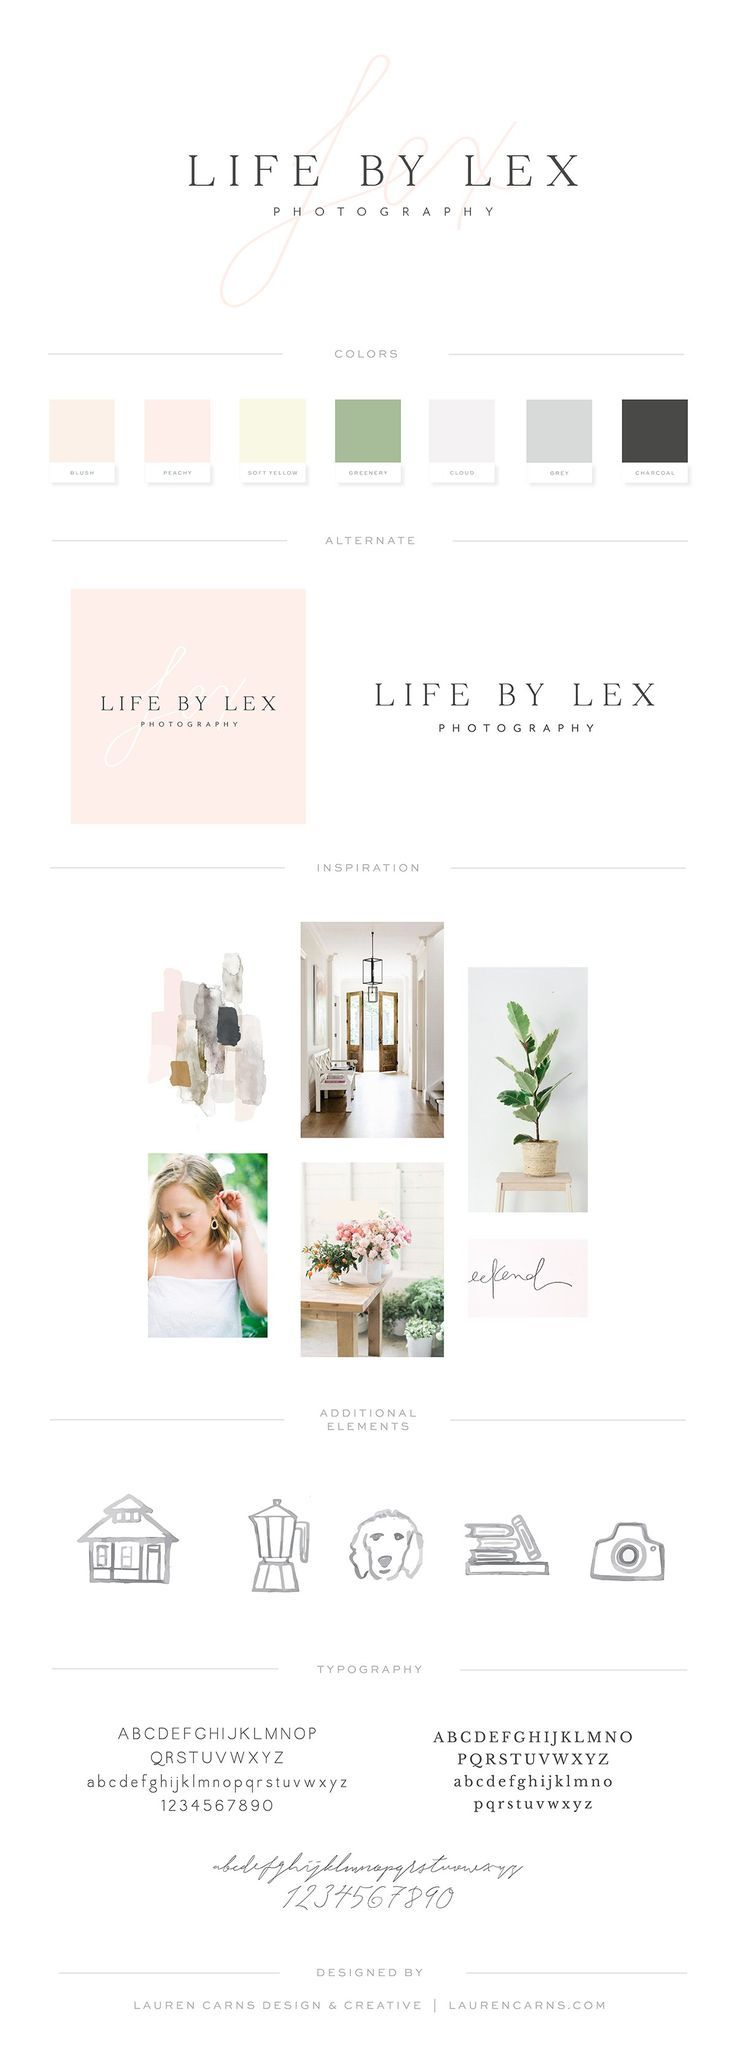 Alexis approached me at the beginning of this year to work on a smaller project to complement her current brand. We hit it off right away as she's a fellow Hoosier and her aesthetic style is on point (also, would someone please explain to me what on point is? I feel like an old person.) …